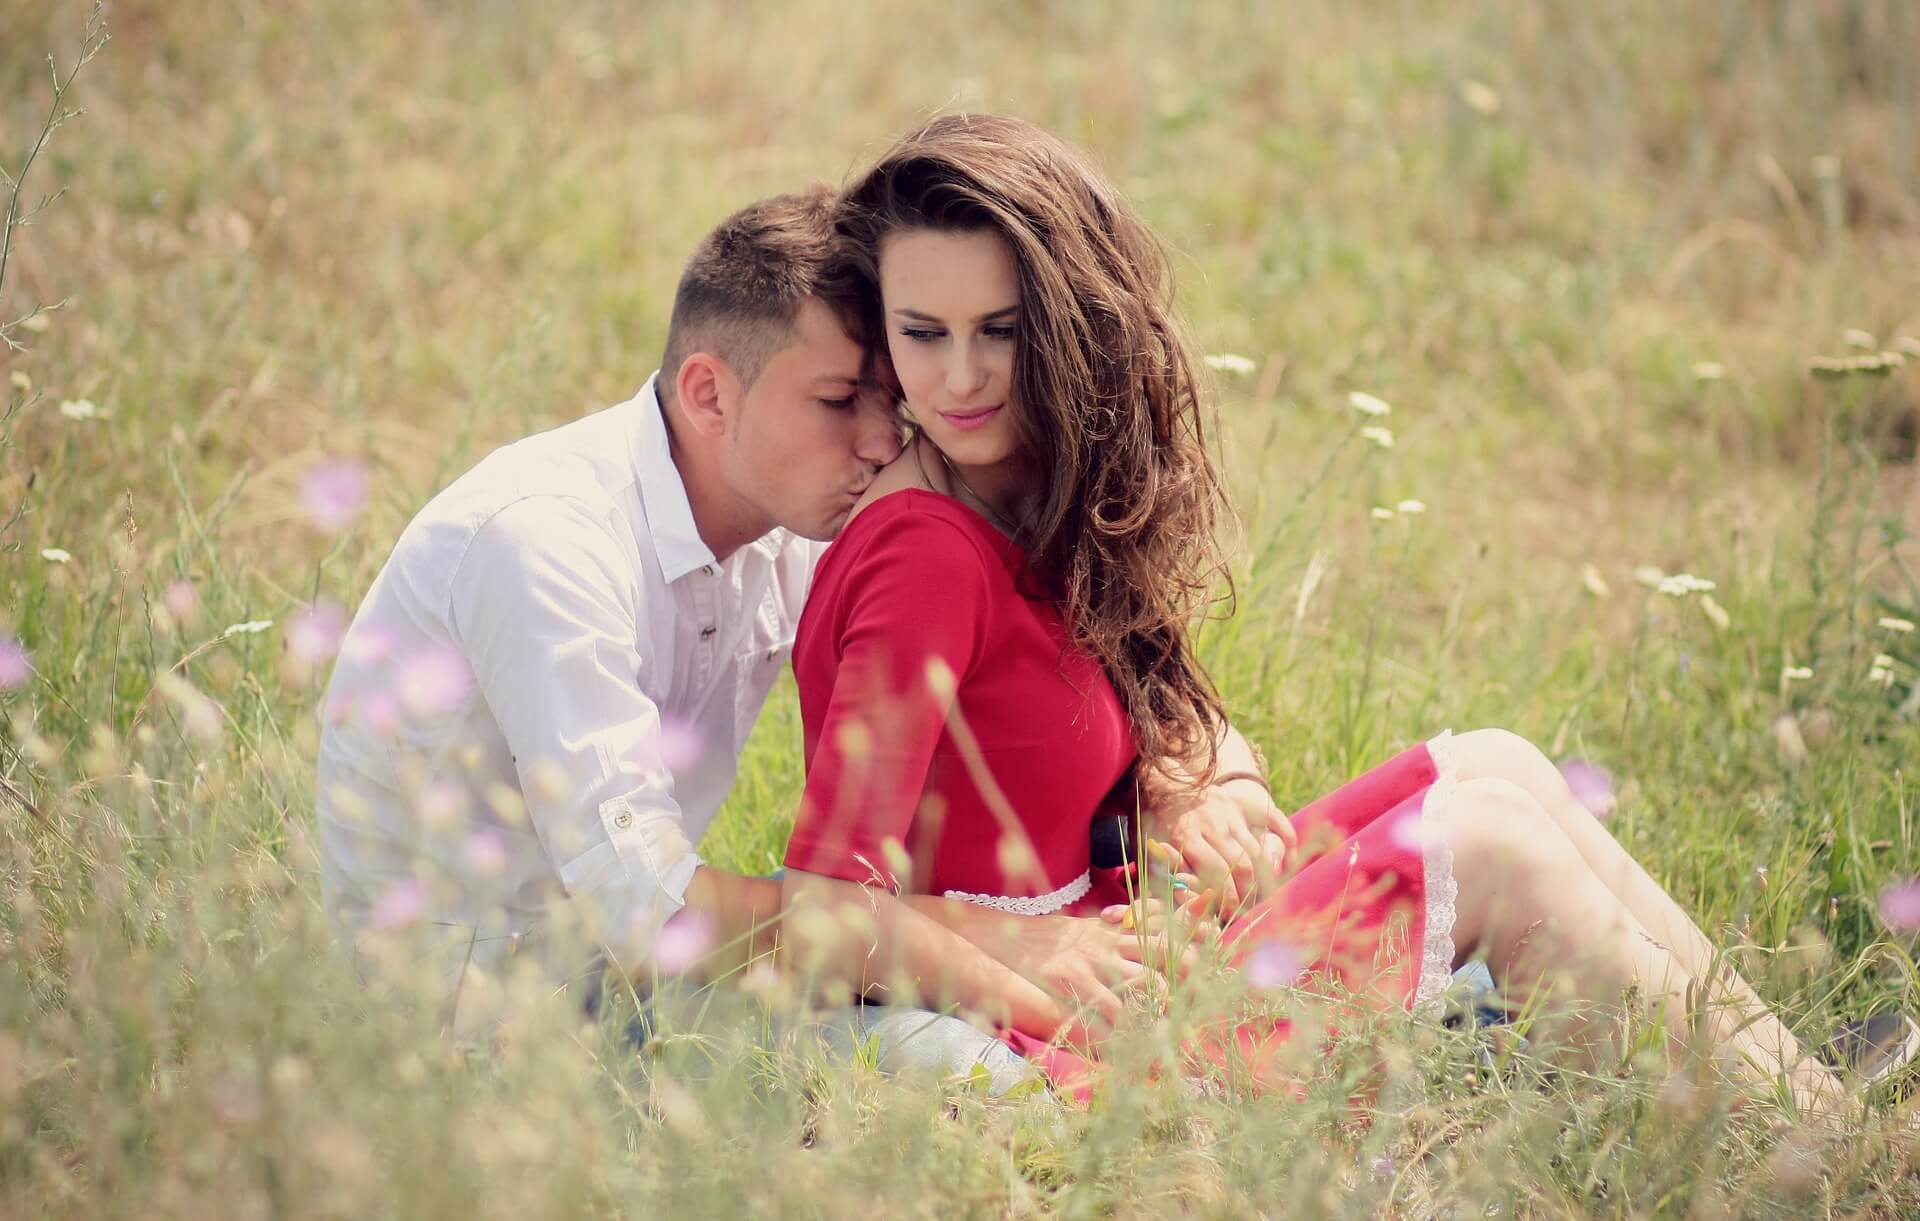 authentic love spells caster in Singapore,black magic love spells in Singapore,lost love spells in Singapore,love spells in Singapore,Lust Spell and Sex Spells in Singapore,Real Love Spells in Singapore,Rekindle Love Spells in Singapore,Spell to Make Someone Fall in Love in Singapore,Spell to Mend a Broken Heart in Singapore,Spells to Delete the Past in Singapore,Spells To Remove Marriage and Relationship Problems in Singapore,spells to Turn Friendship to Love in Singapore,true love spells in Singapore,Truth Love Spells in Singapore,voodoo love spells in Singapore,witchcraft love spells in Singapore